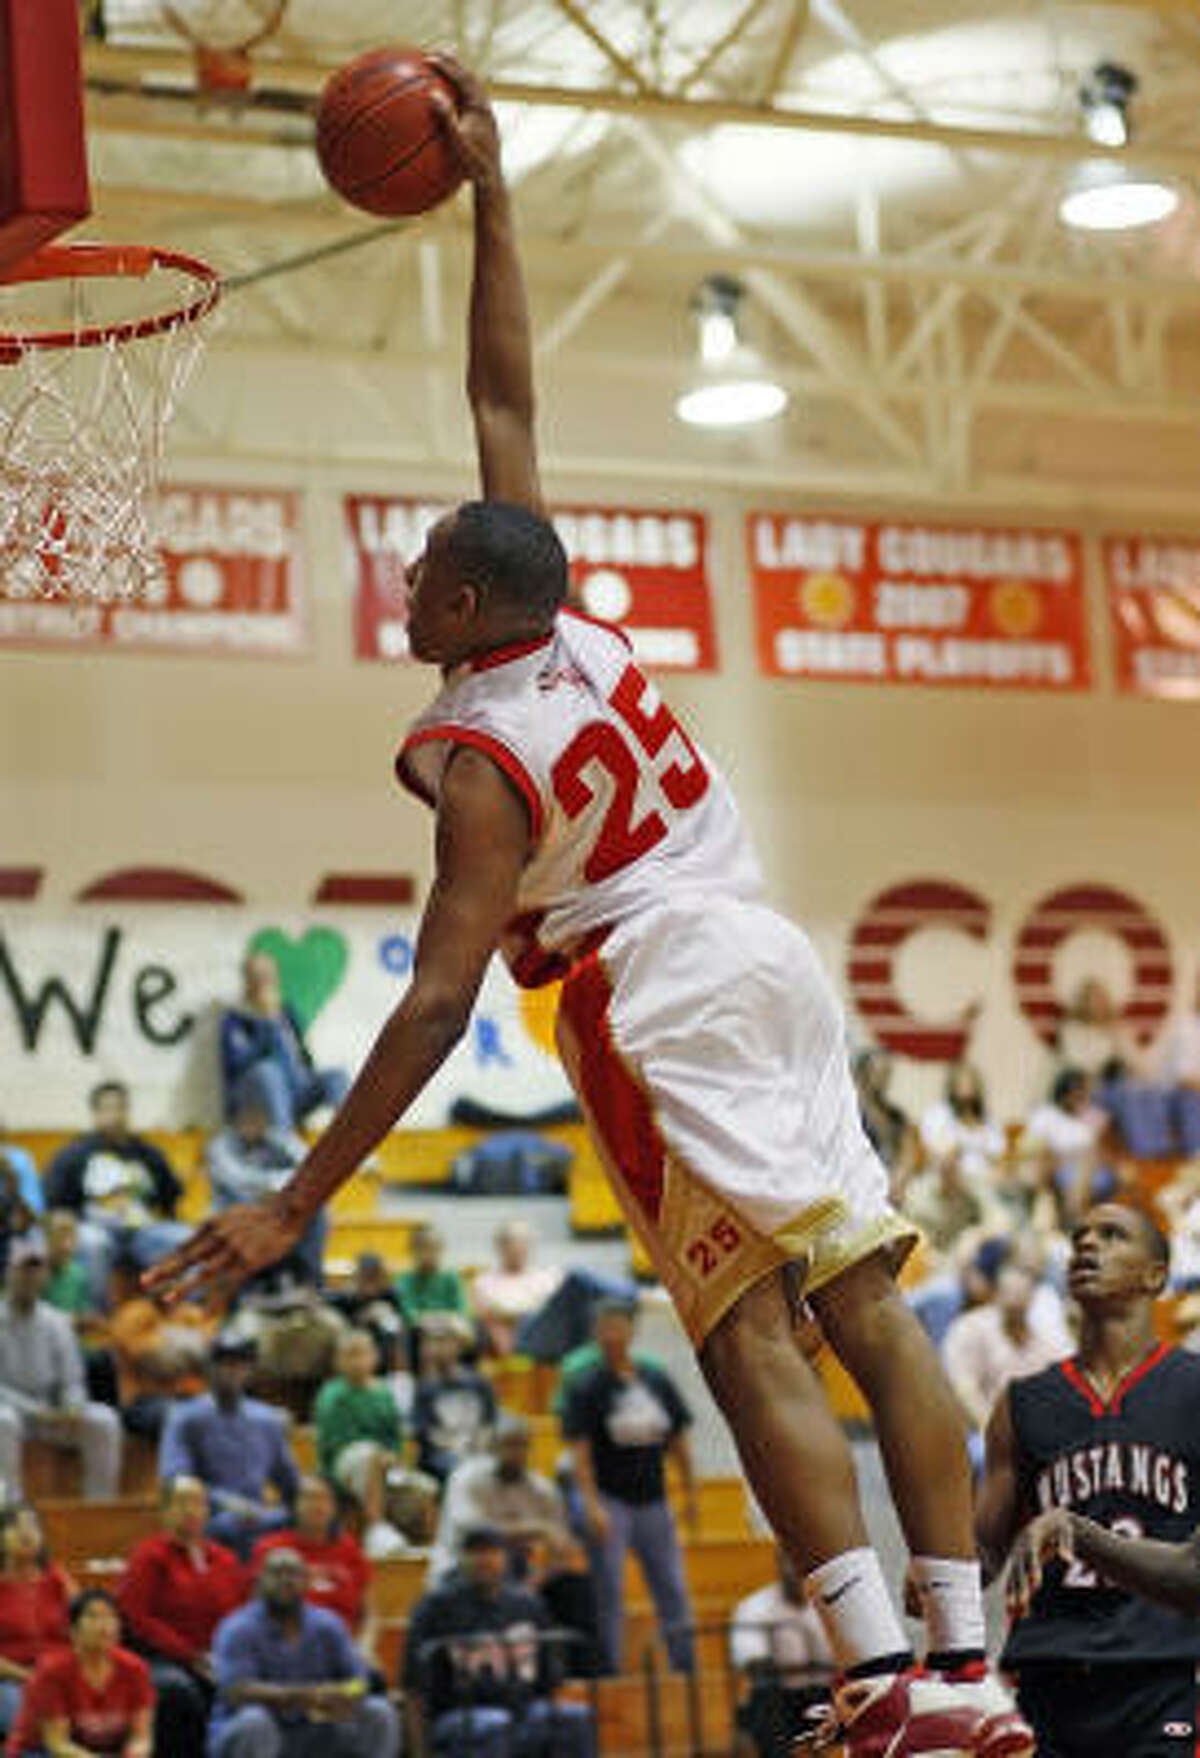 DEE MARCO RICHARDSON, CY WOODS When: Feb. 27. Opponent: Westfield.